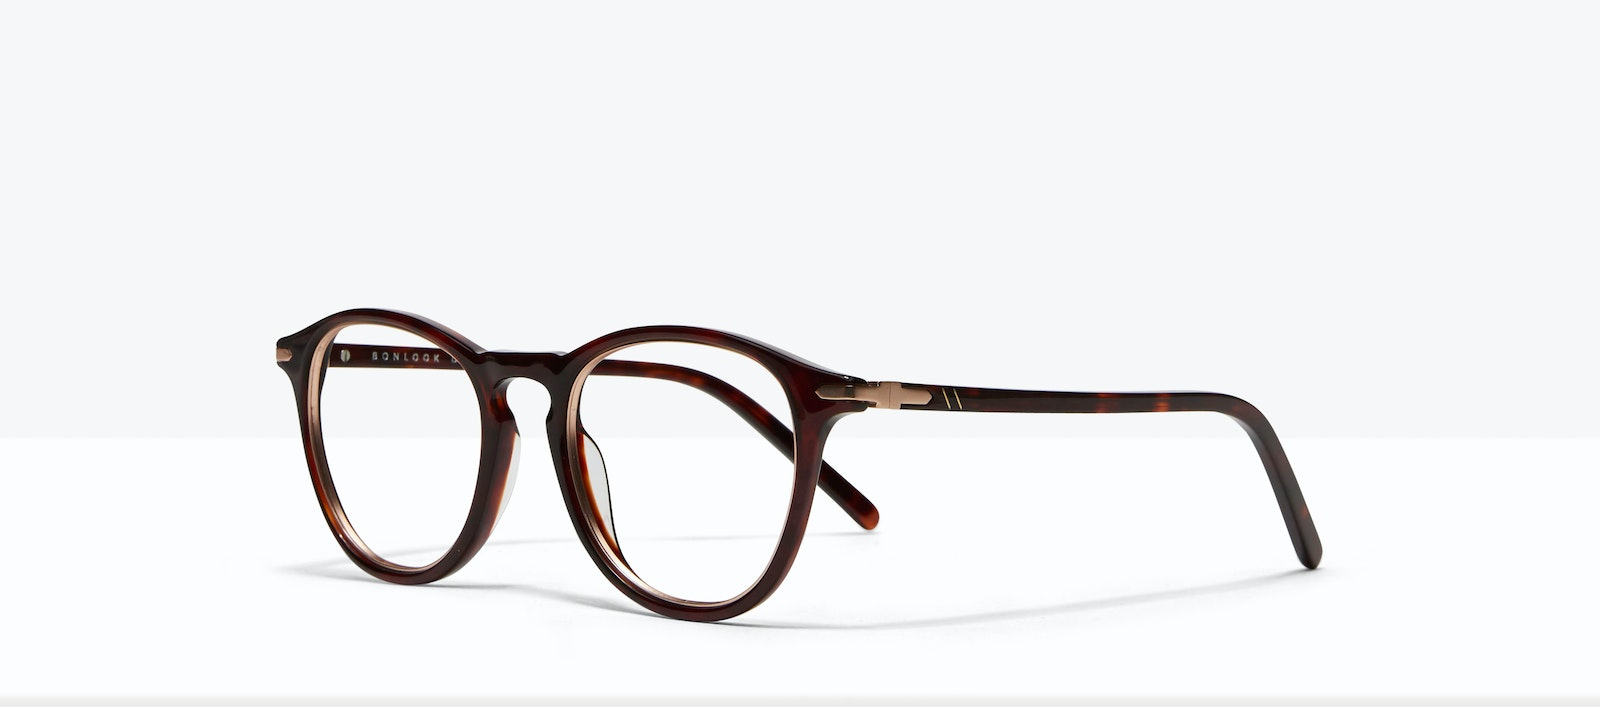 Affordable Fashion Glasses Round Eyeglasses Men Looks Tortoise Tilt